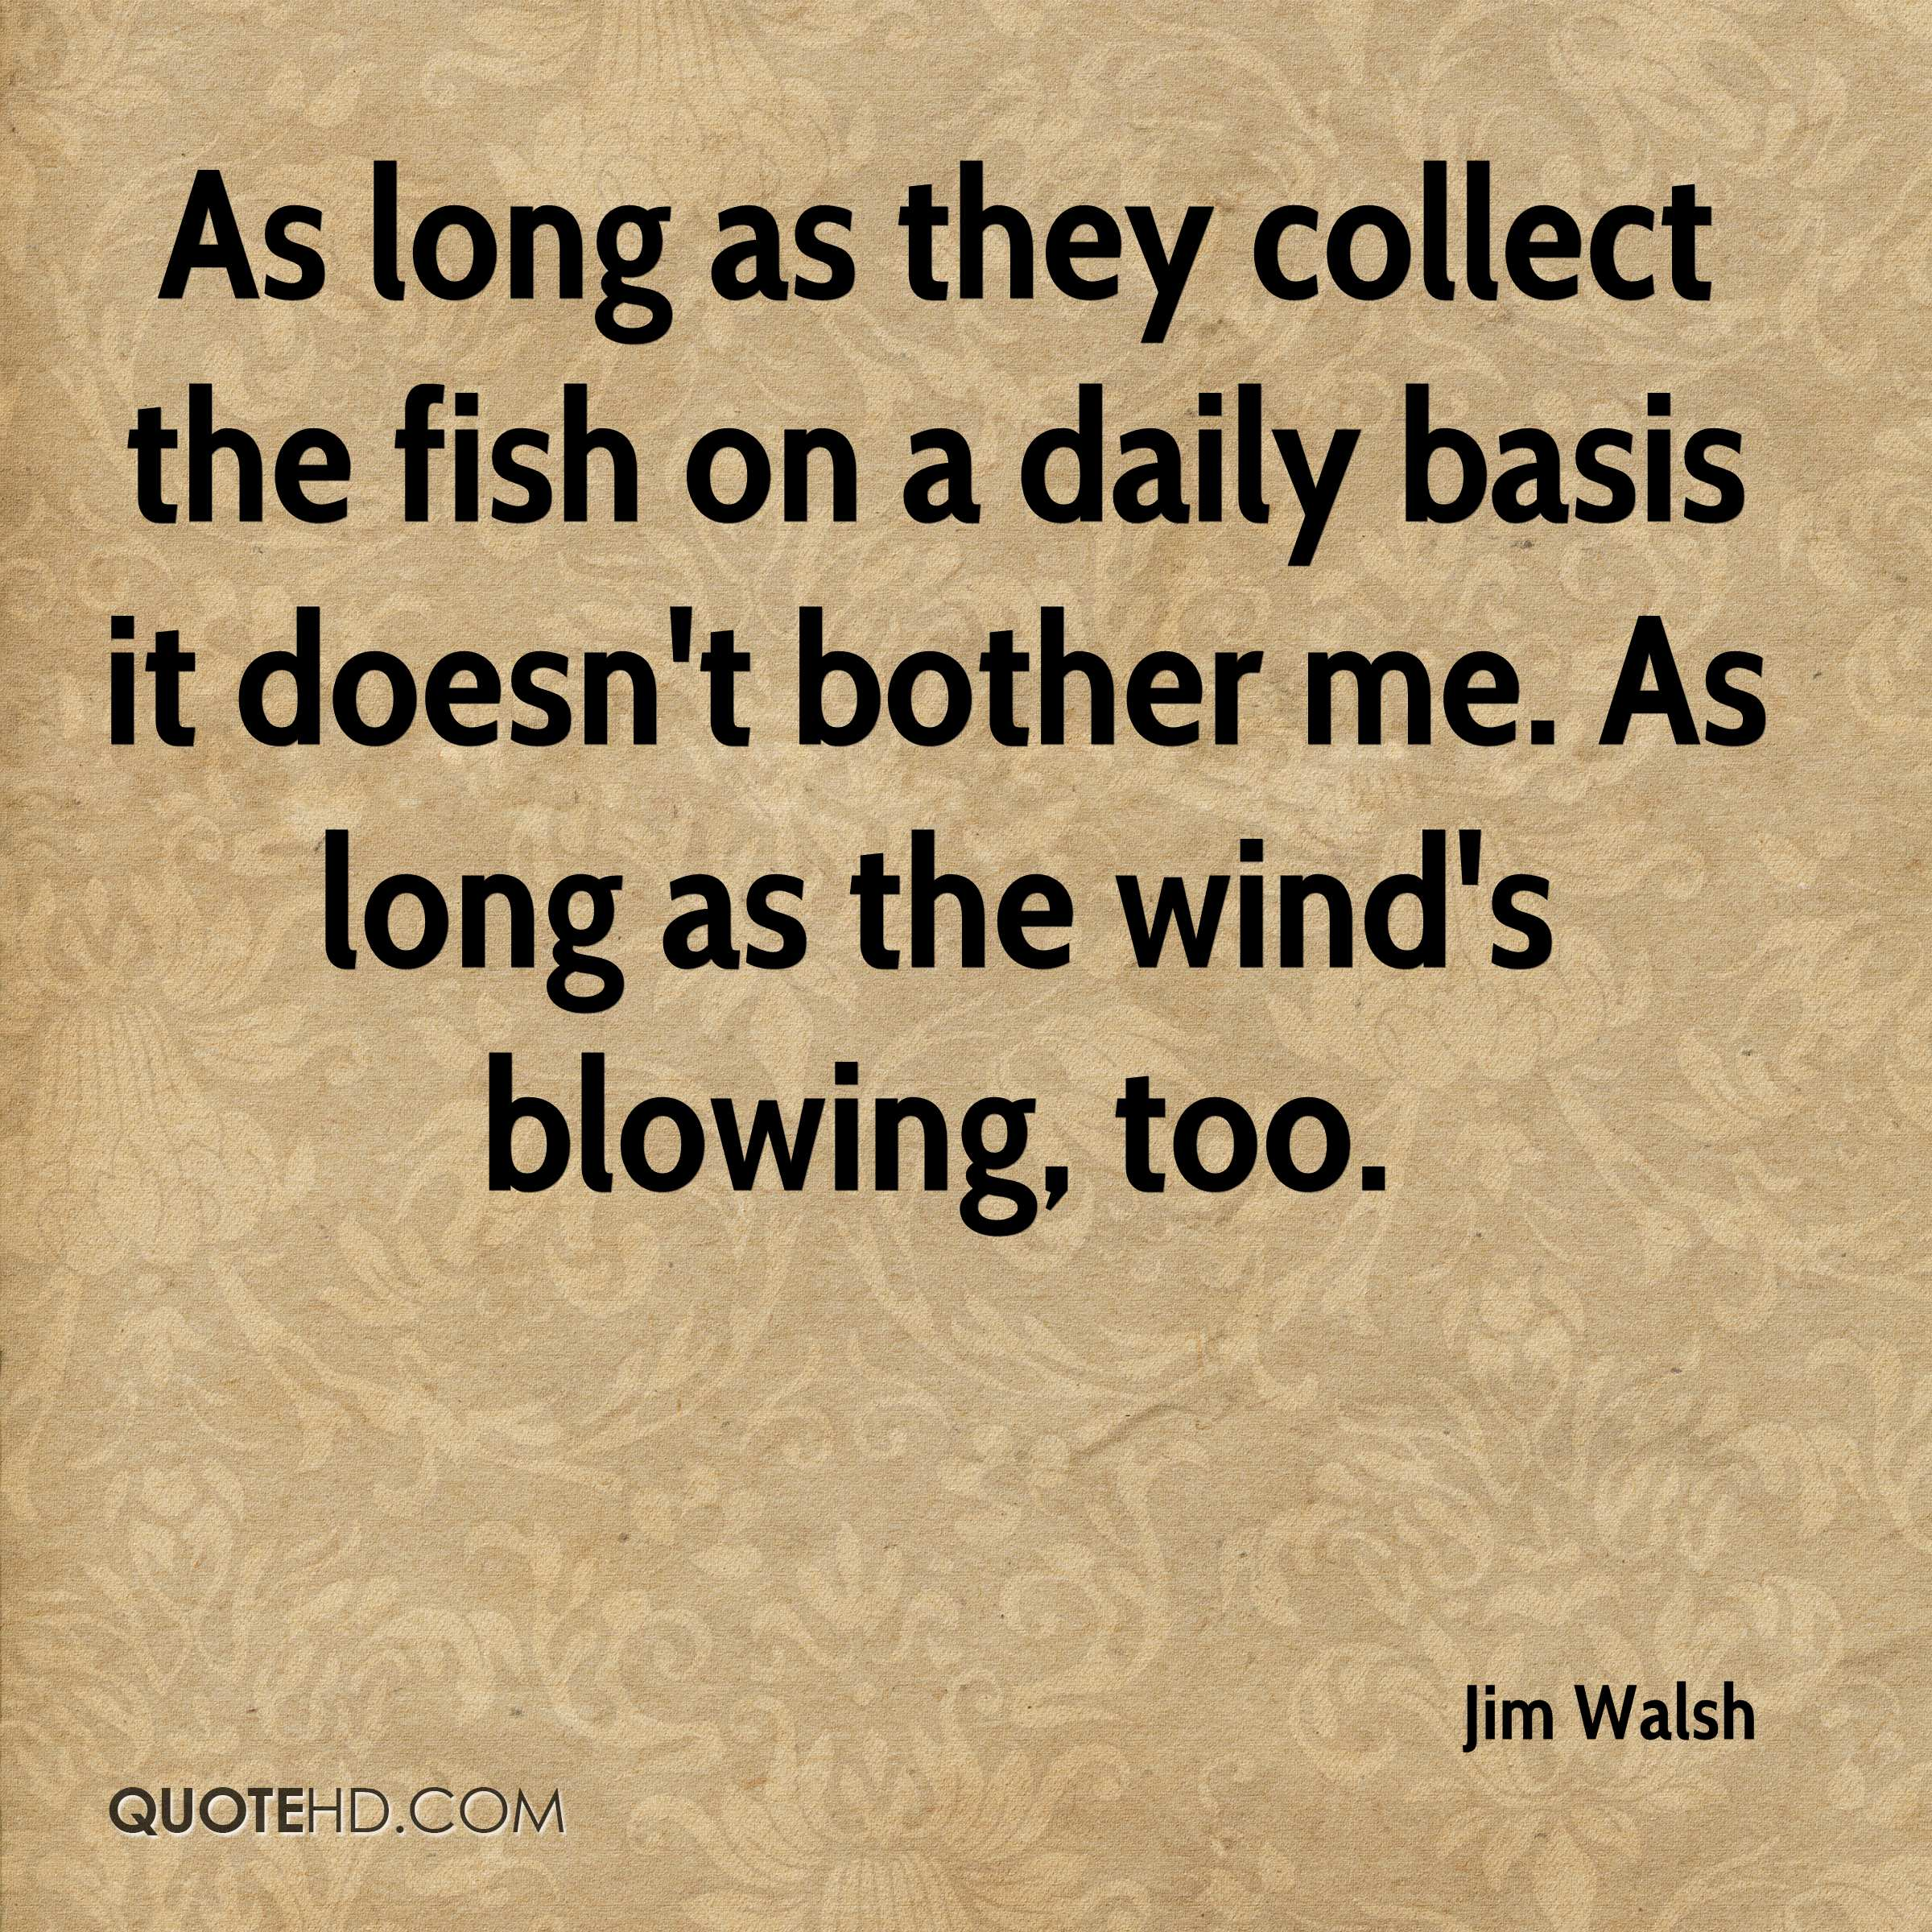 As long as they collect the fish on a daily basis it doesn't bother me. As long as the wind's blowing, too.